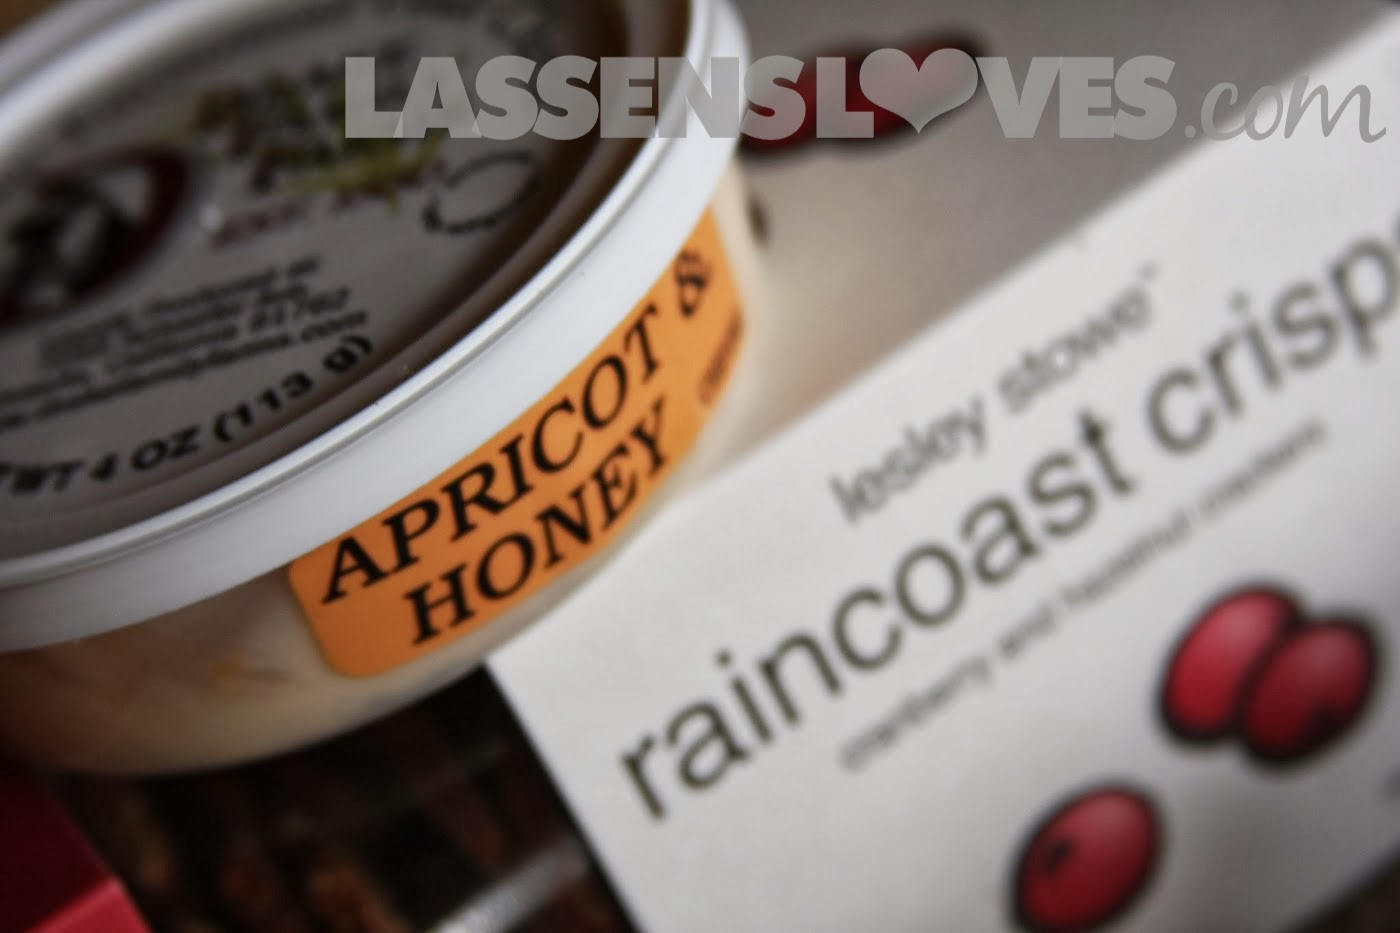 lassensloves.com, Lassen's, Lassens, Team+Member+Spotlight, Leslie+Stowe+Raincoast+crisps, Drake Family+Farm+Chevre